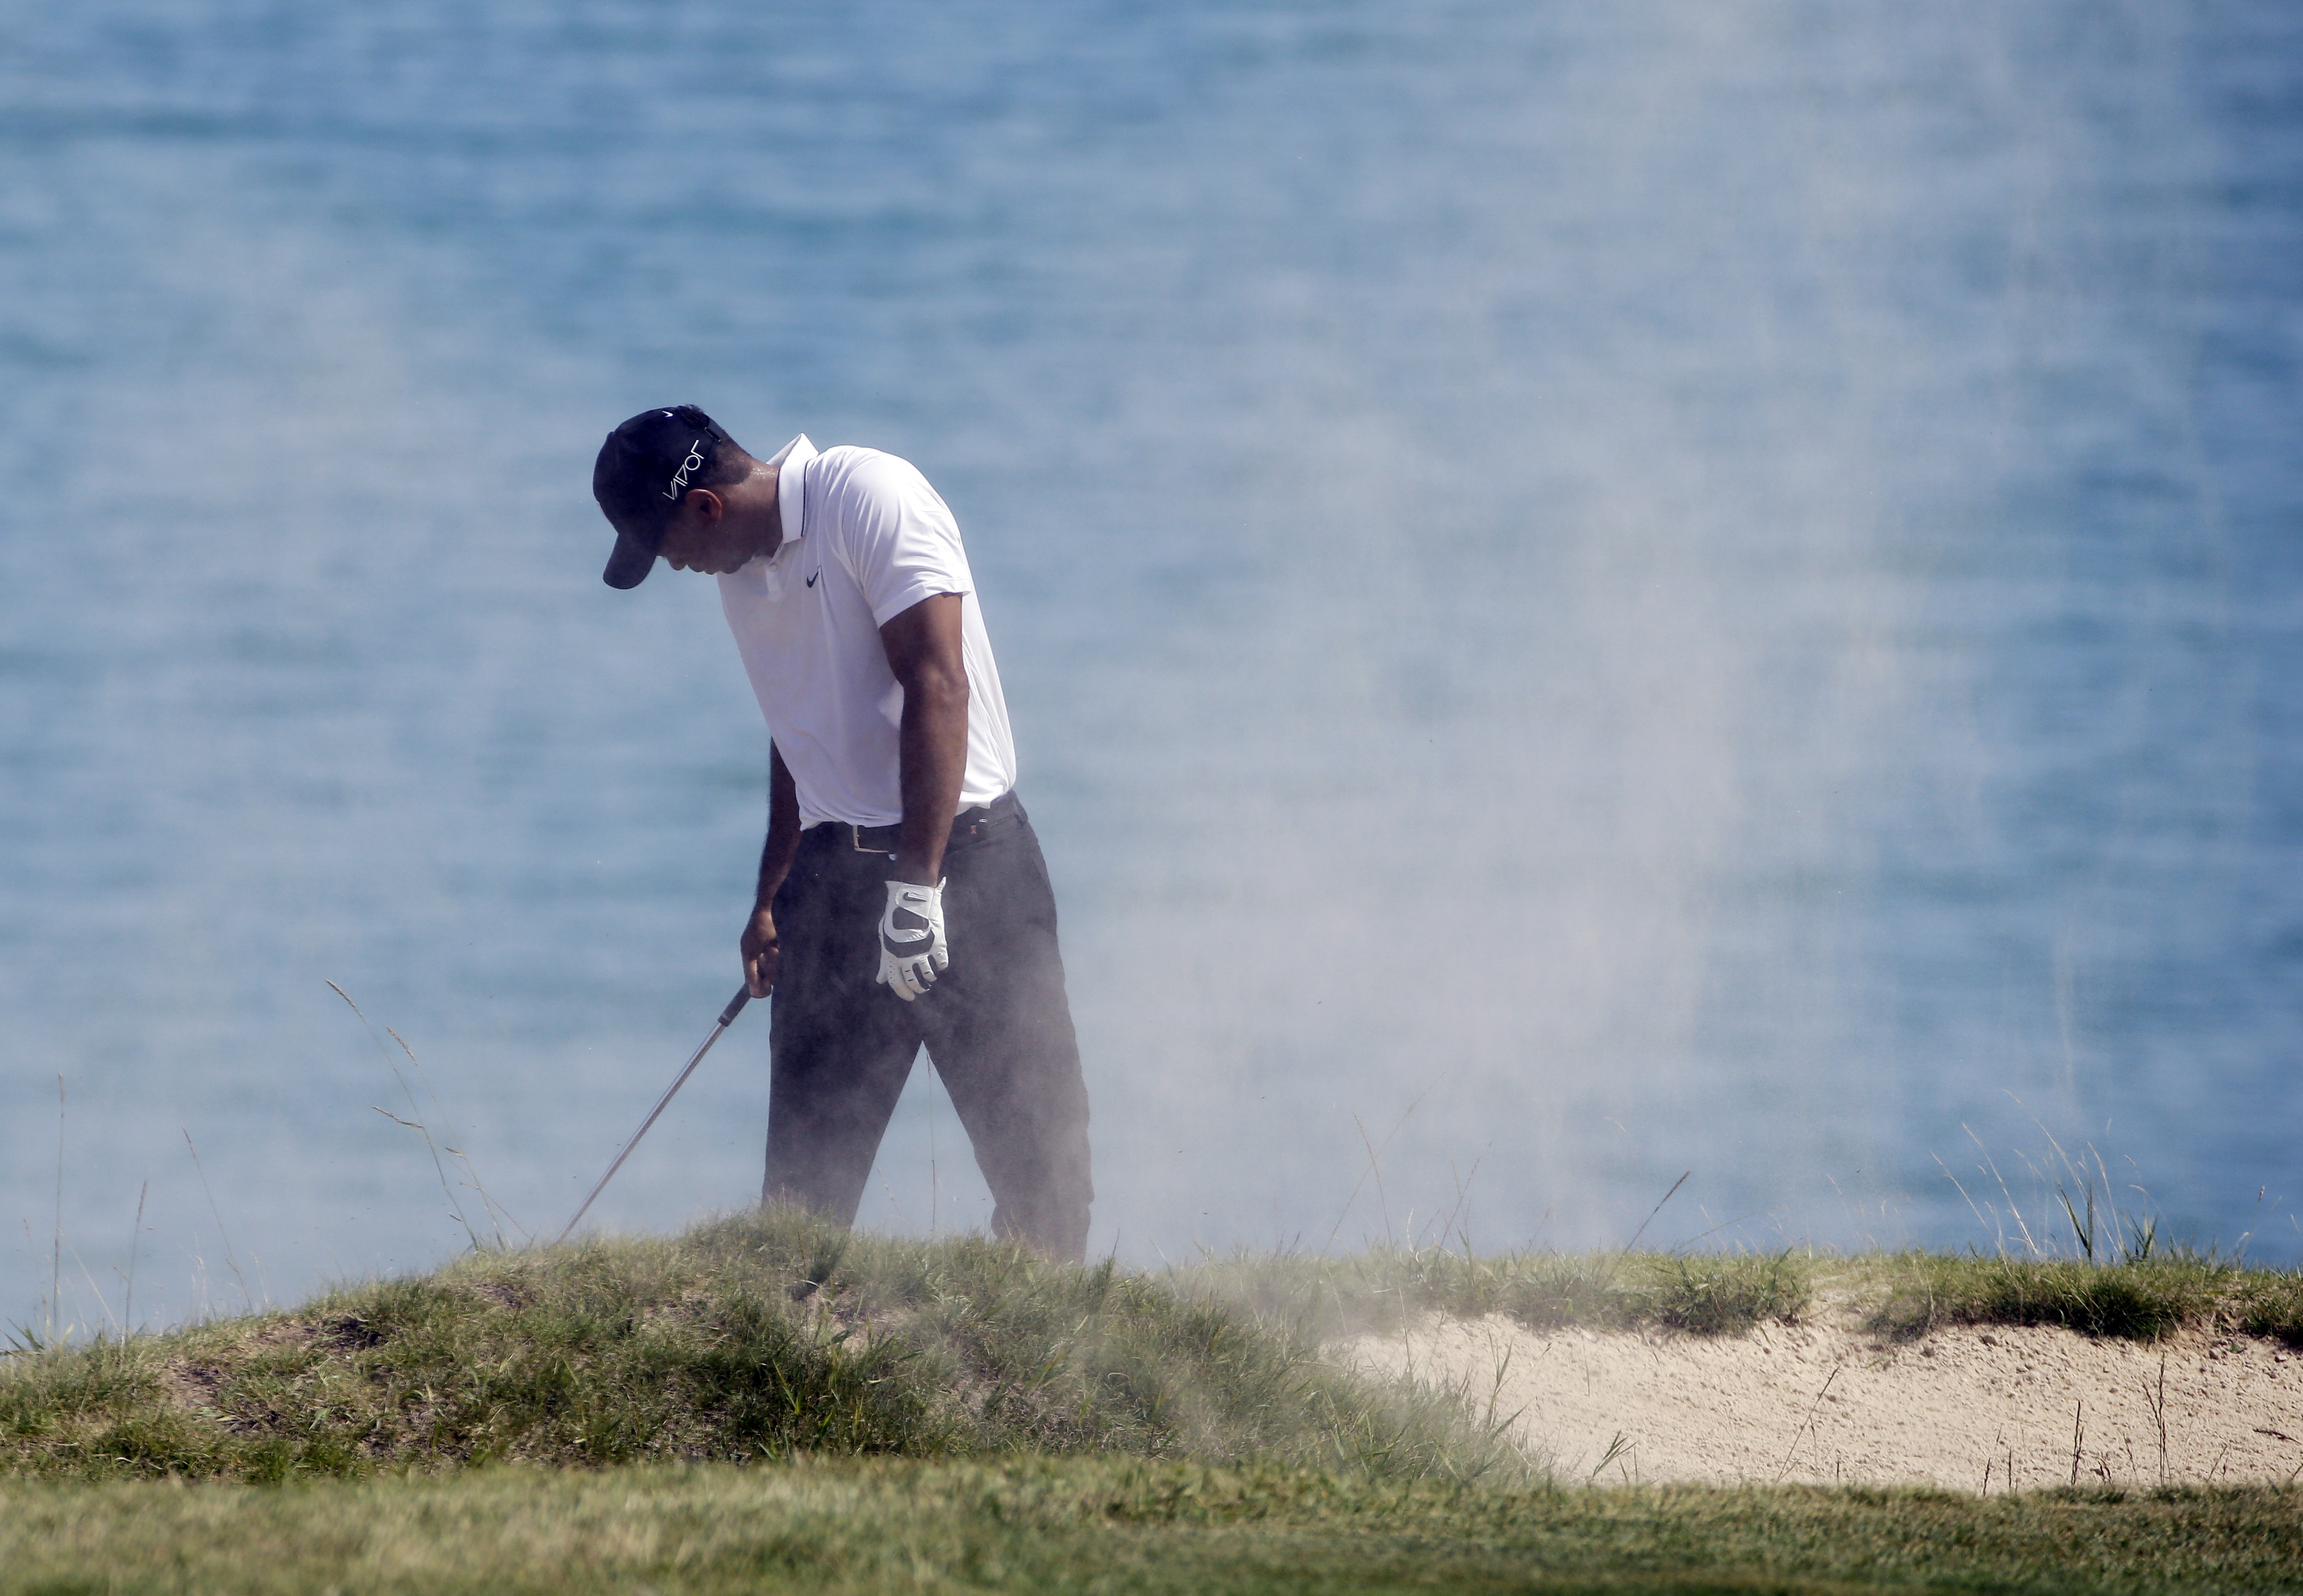 Tiger Woods covers his face after hitting from a bunker on the fourth holeduring the second round of the PGA Championship golf tournament Friday, Aug. 14, 2015, at Whistling Straits in Haven, Wis. (AP Photo/Brynn Anderson)